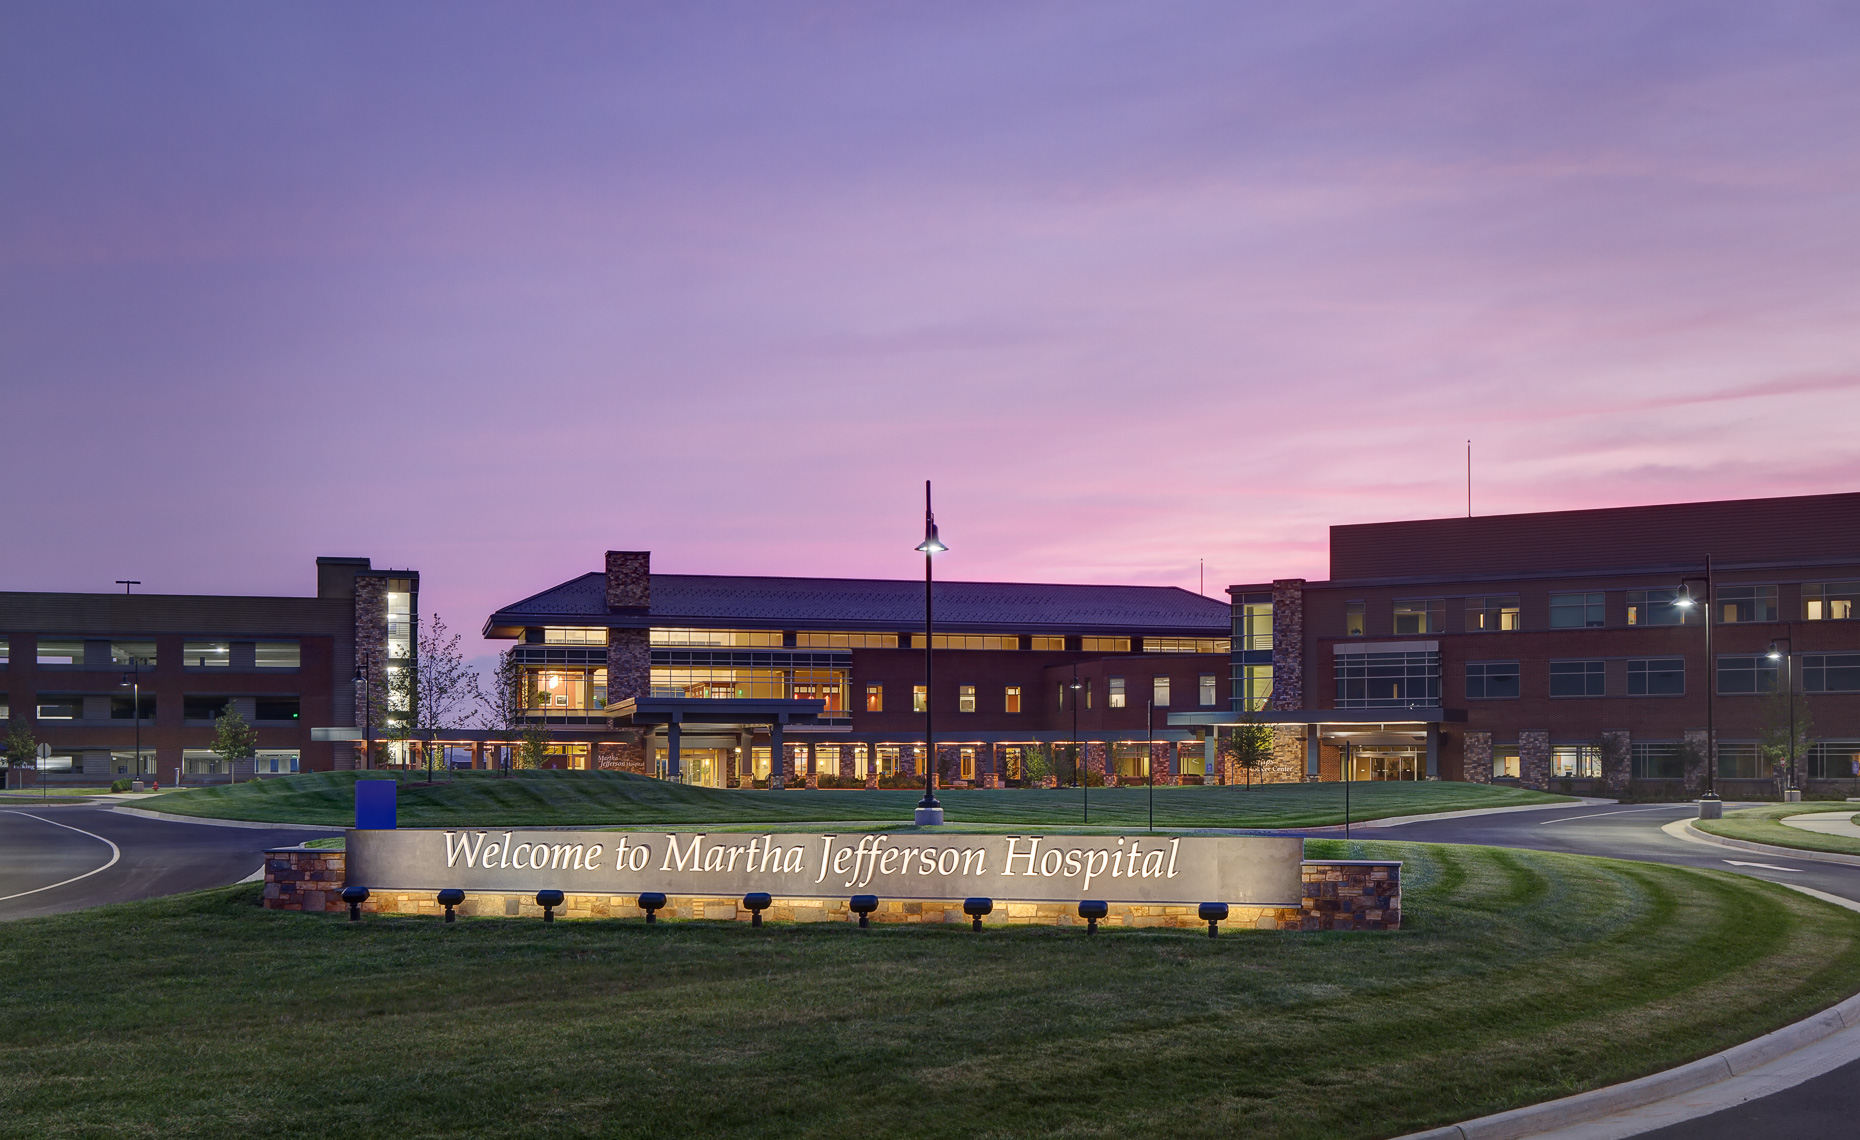 Virginia Hamrick Photography - Martha Jefferson Hospital - Medical